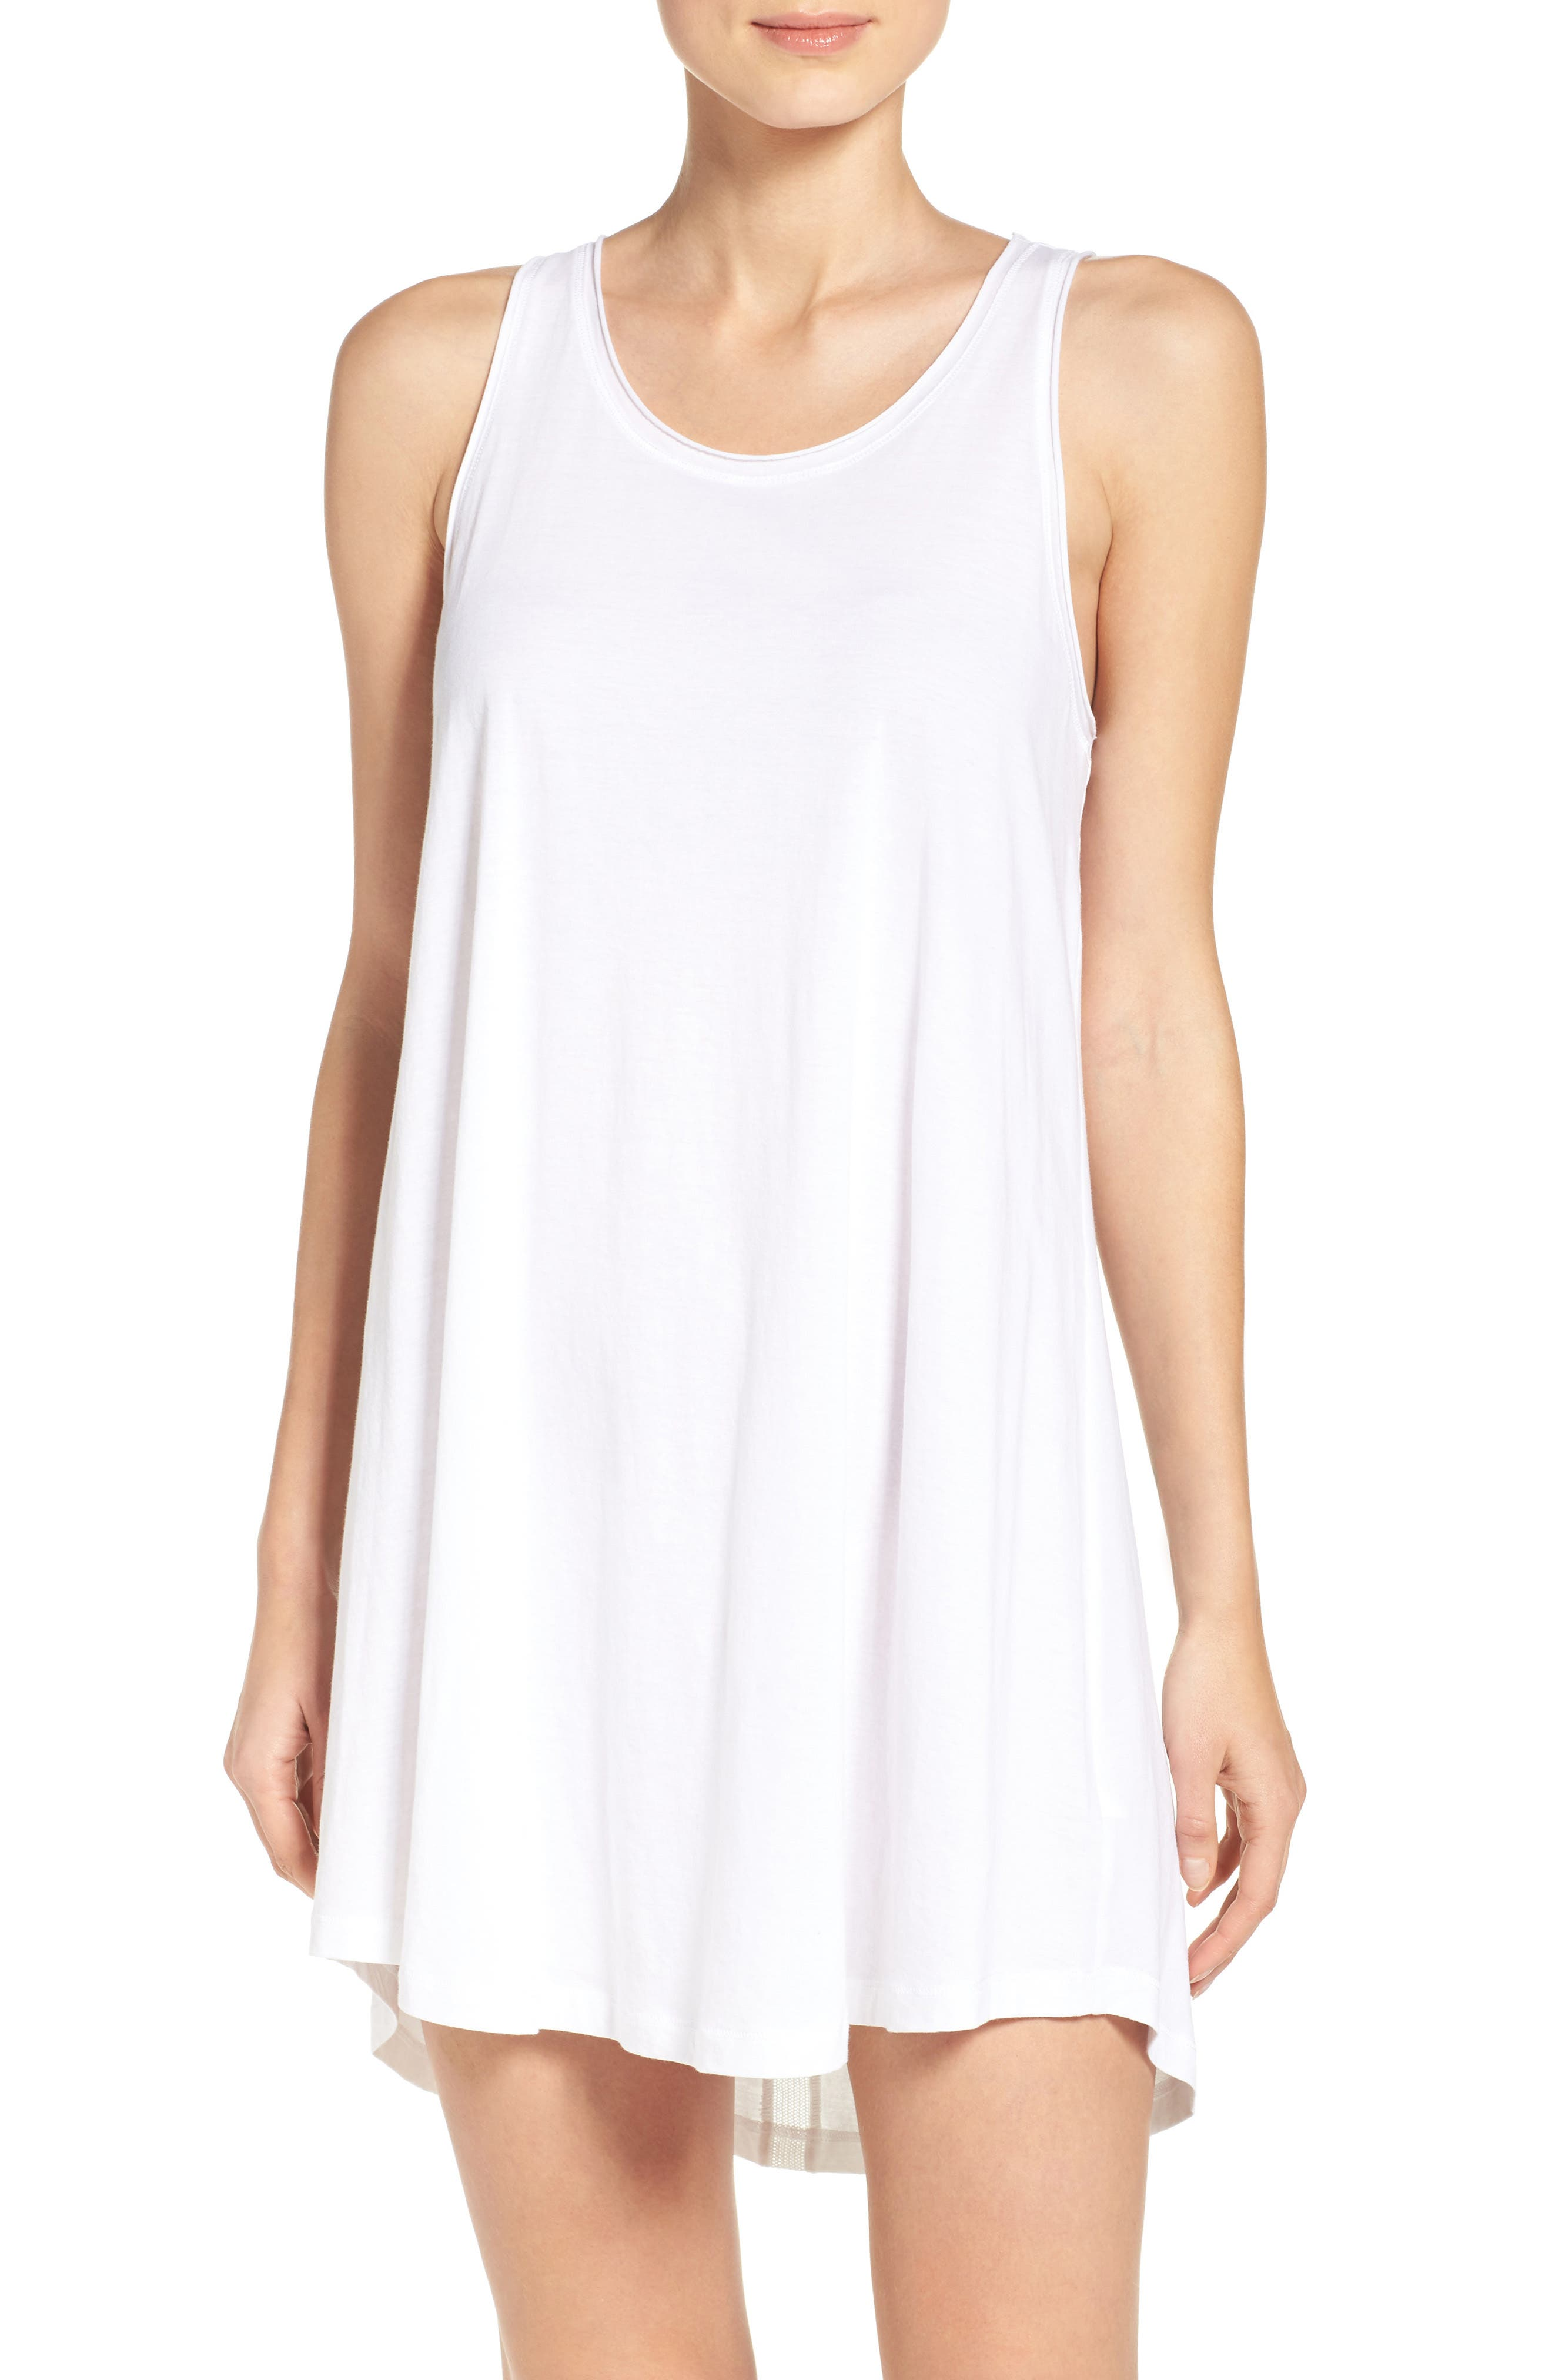 Jersey Chemise,                         Main,                         color, White